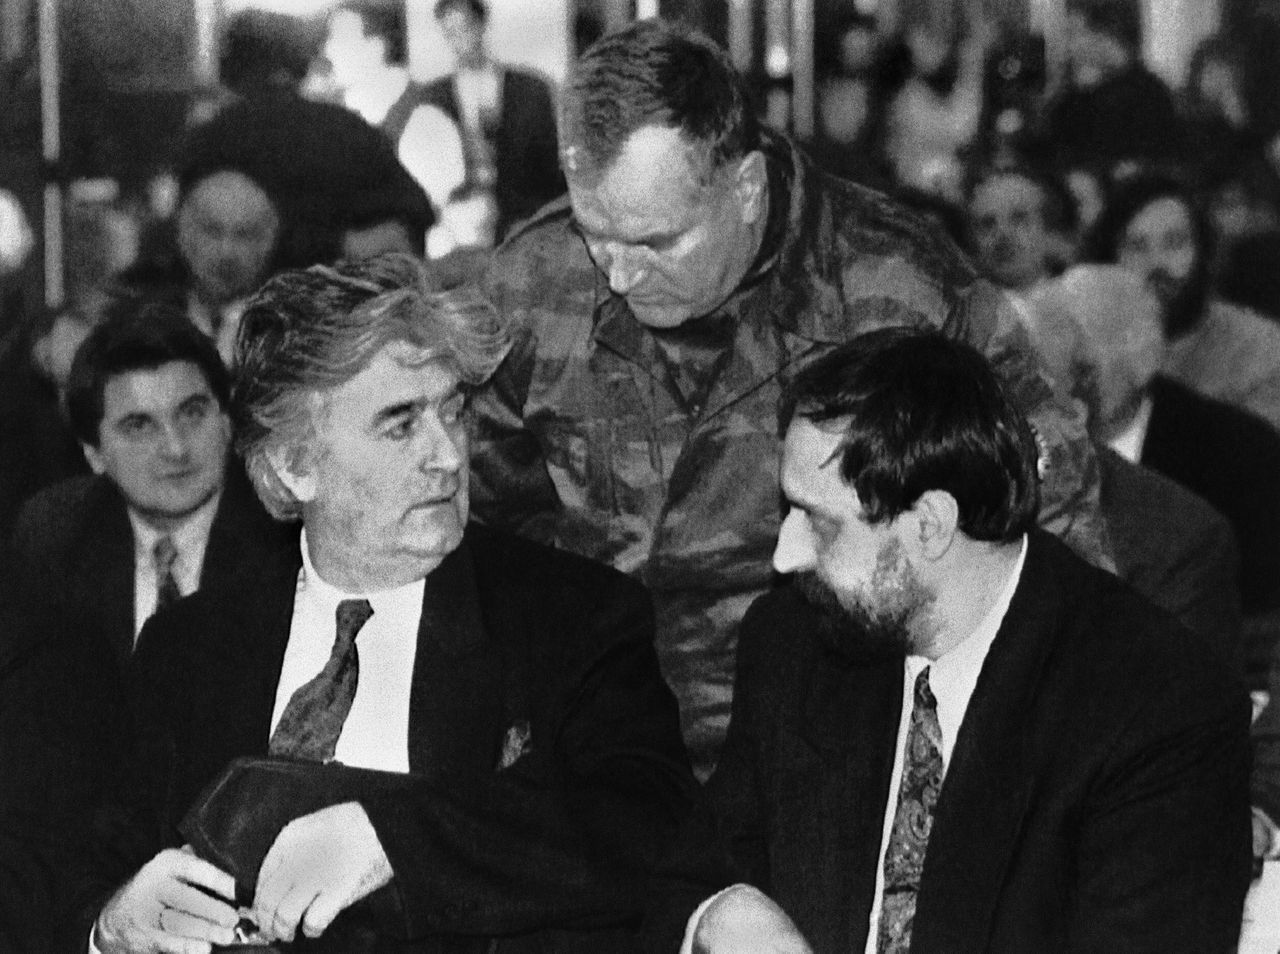 FILE In this Jan. 19, 1993 file photo, Leader of the Bosnian Serbs Radovan Karadzic, left, Commander in chief of Bosnia Serbian army Col. General Ratko Mladic, center, and Goran Hadzic, President of the Serbian Krajina Republic in Croatia talk at the start of the parliament session in Pale, Bosnia. It has been reported on Wednesday, July 20, 2011 by Serbian TV station B92 that authorities have arrested Goran Hadzic, the last remaining fugitive sought by the U.N. war crimes court. Hadzic has been on the run for eight years. He is wanted for atrocities stemming from the 1991-1995 war in Croatia. (AP Photo/Srdjan Ilic, File)